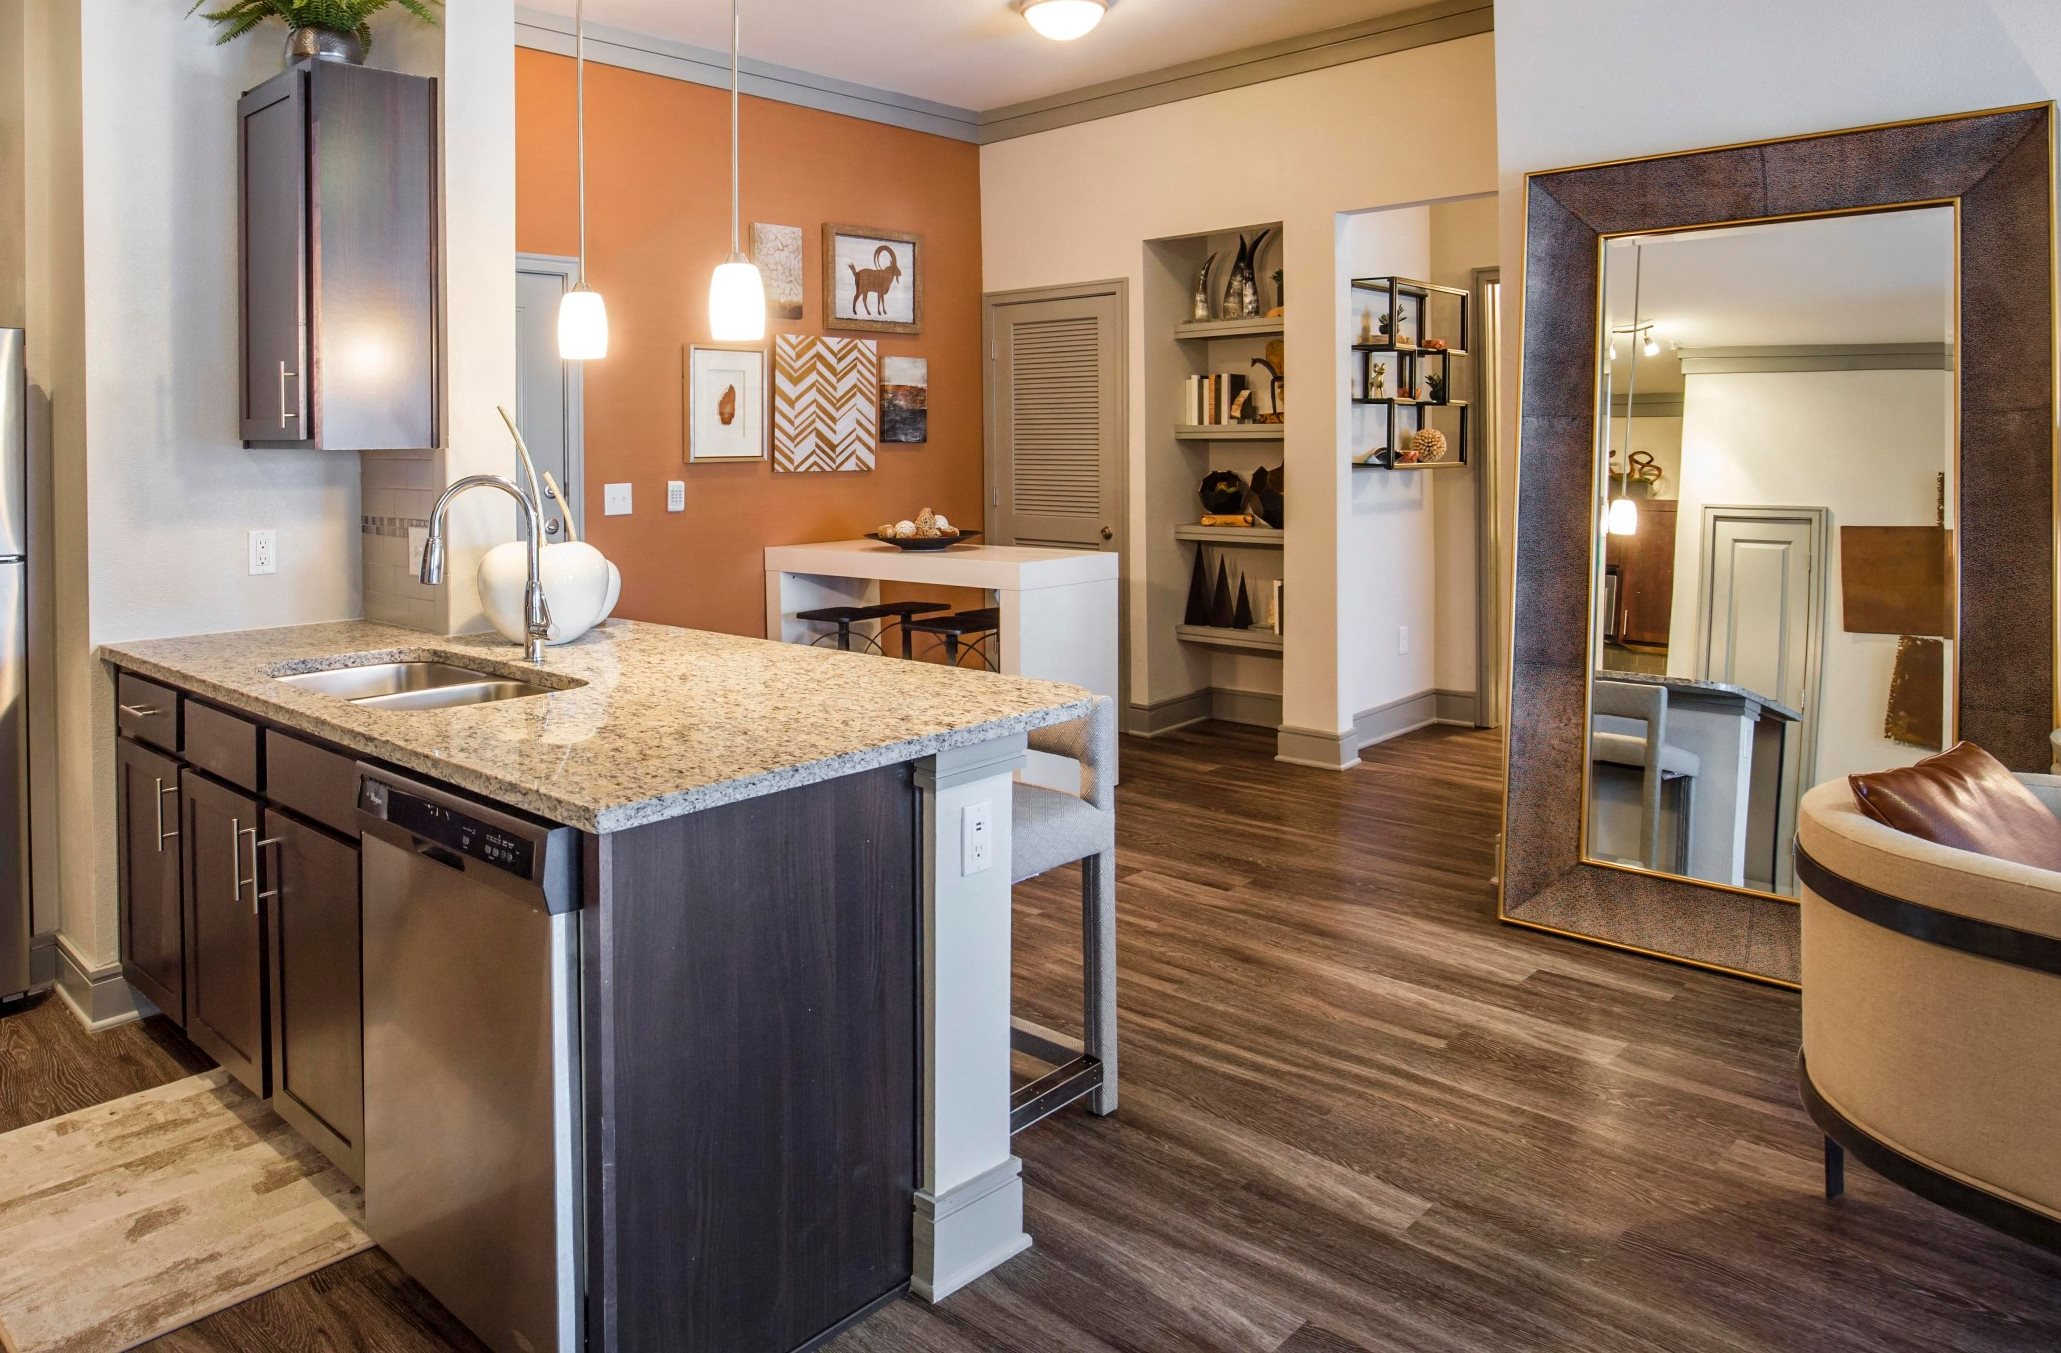 Clubhouse kitchen interior with hardwood style floor, espresso cabinets, and orange accent wall